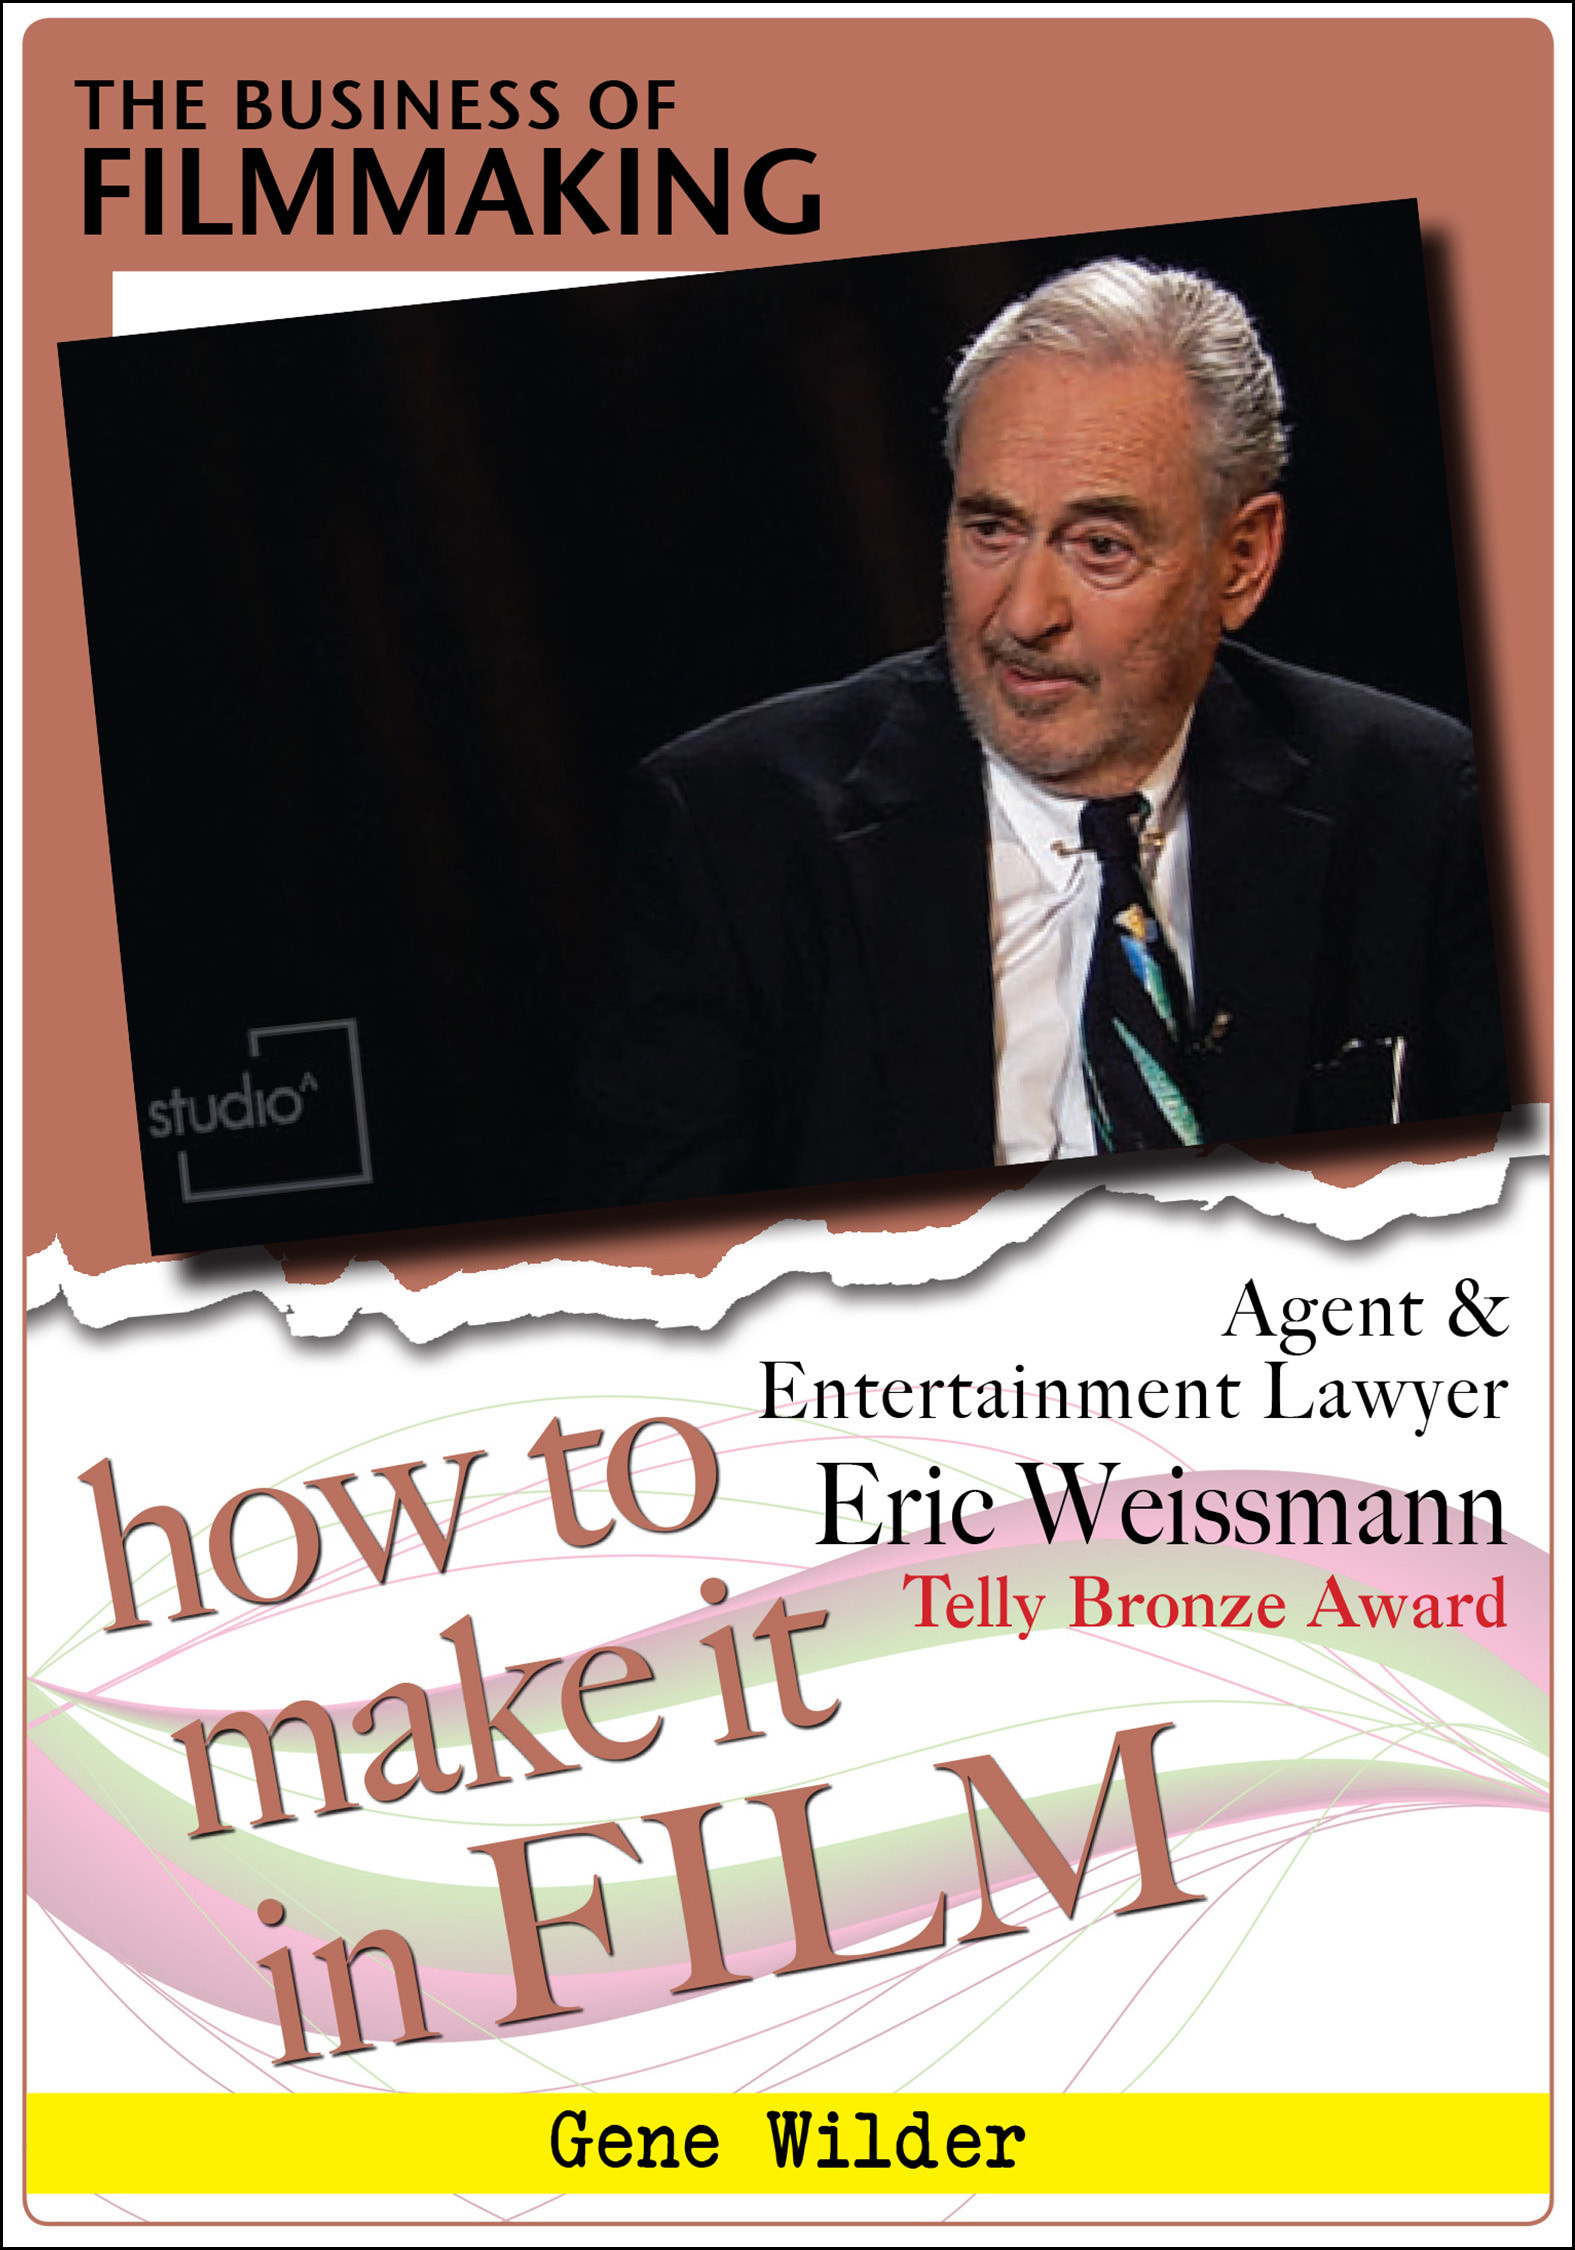 F2837 - The Business of Film with Agent & Entertainment Lawyer Eric Weissmann